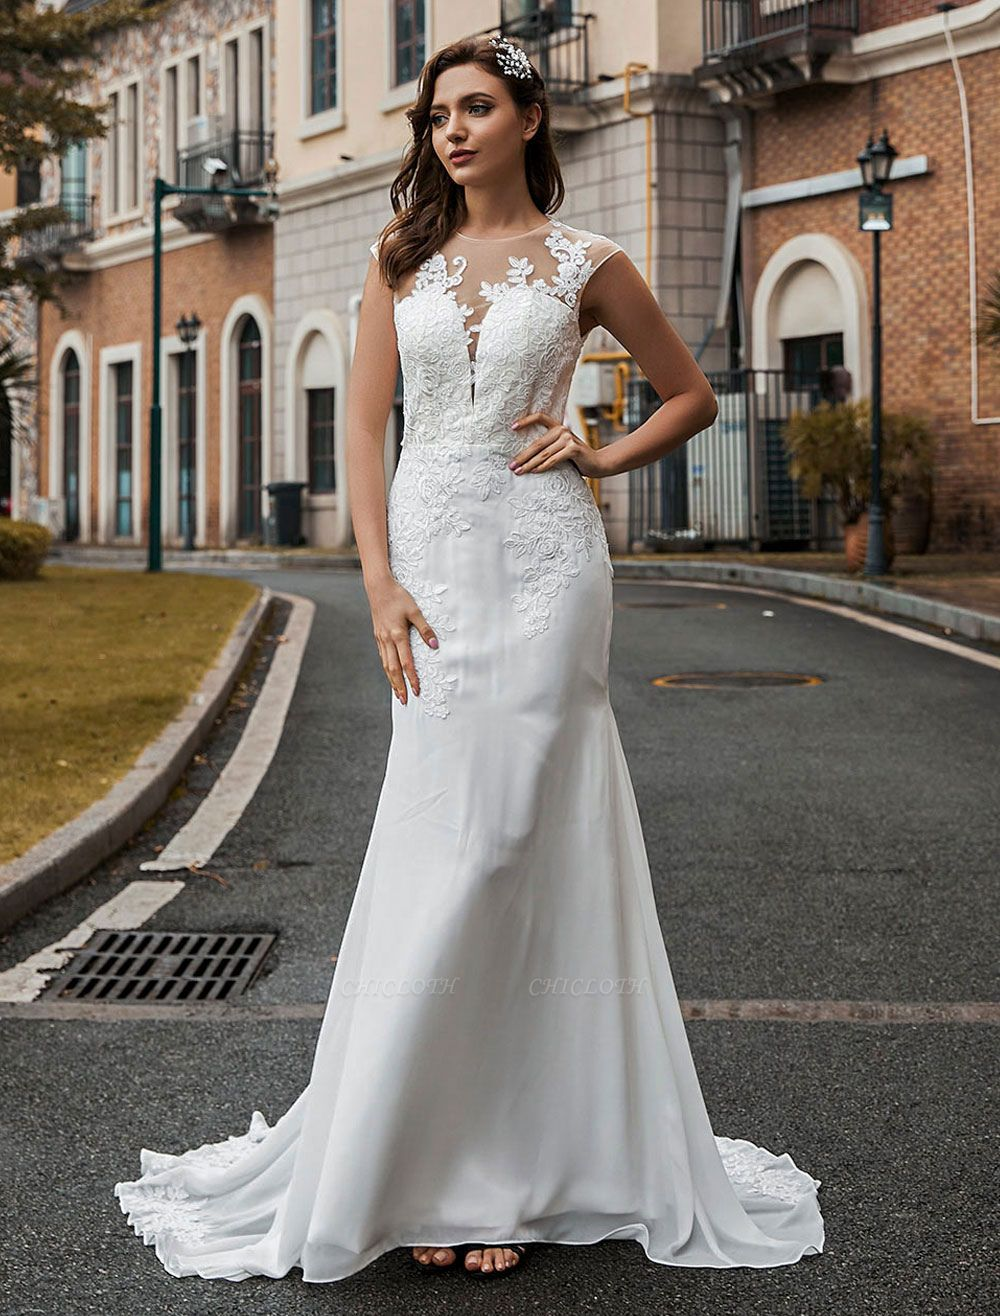 Wedding Bridal Gowns Jewel Neck Sleeveless Natural Waist Buttons Court Train Bridal Gowns Exclusive